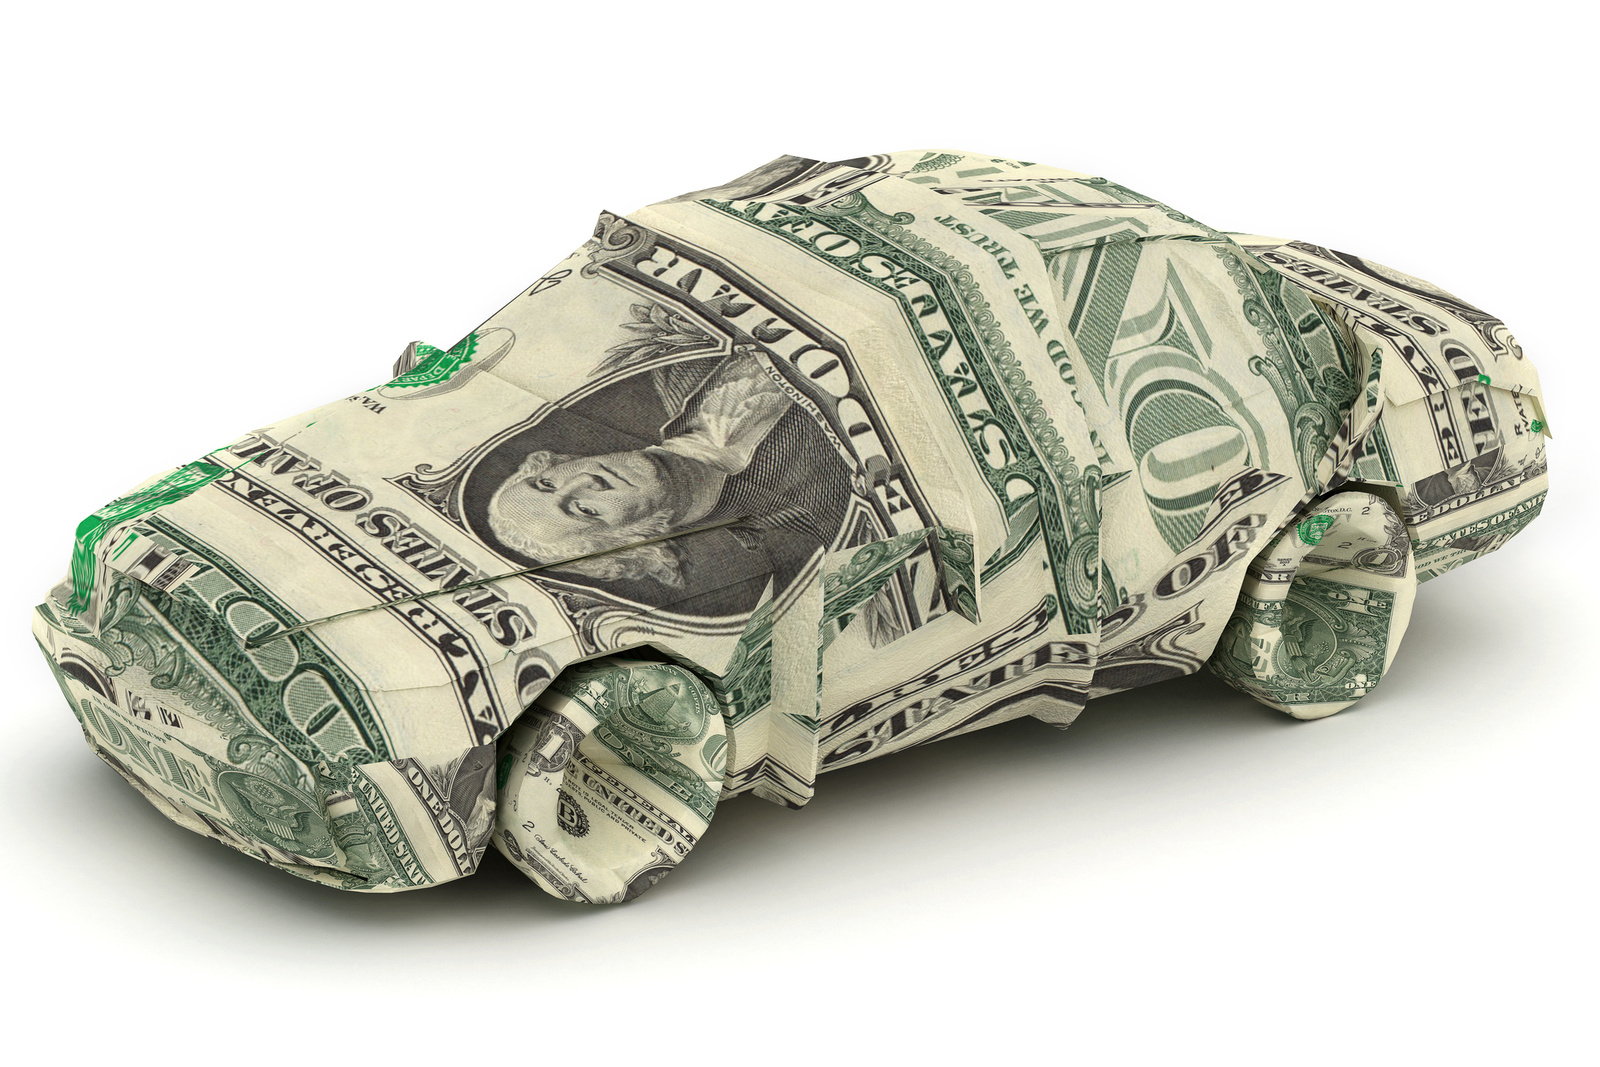 What Do I Do with My Totaled Car? - CarGurus